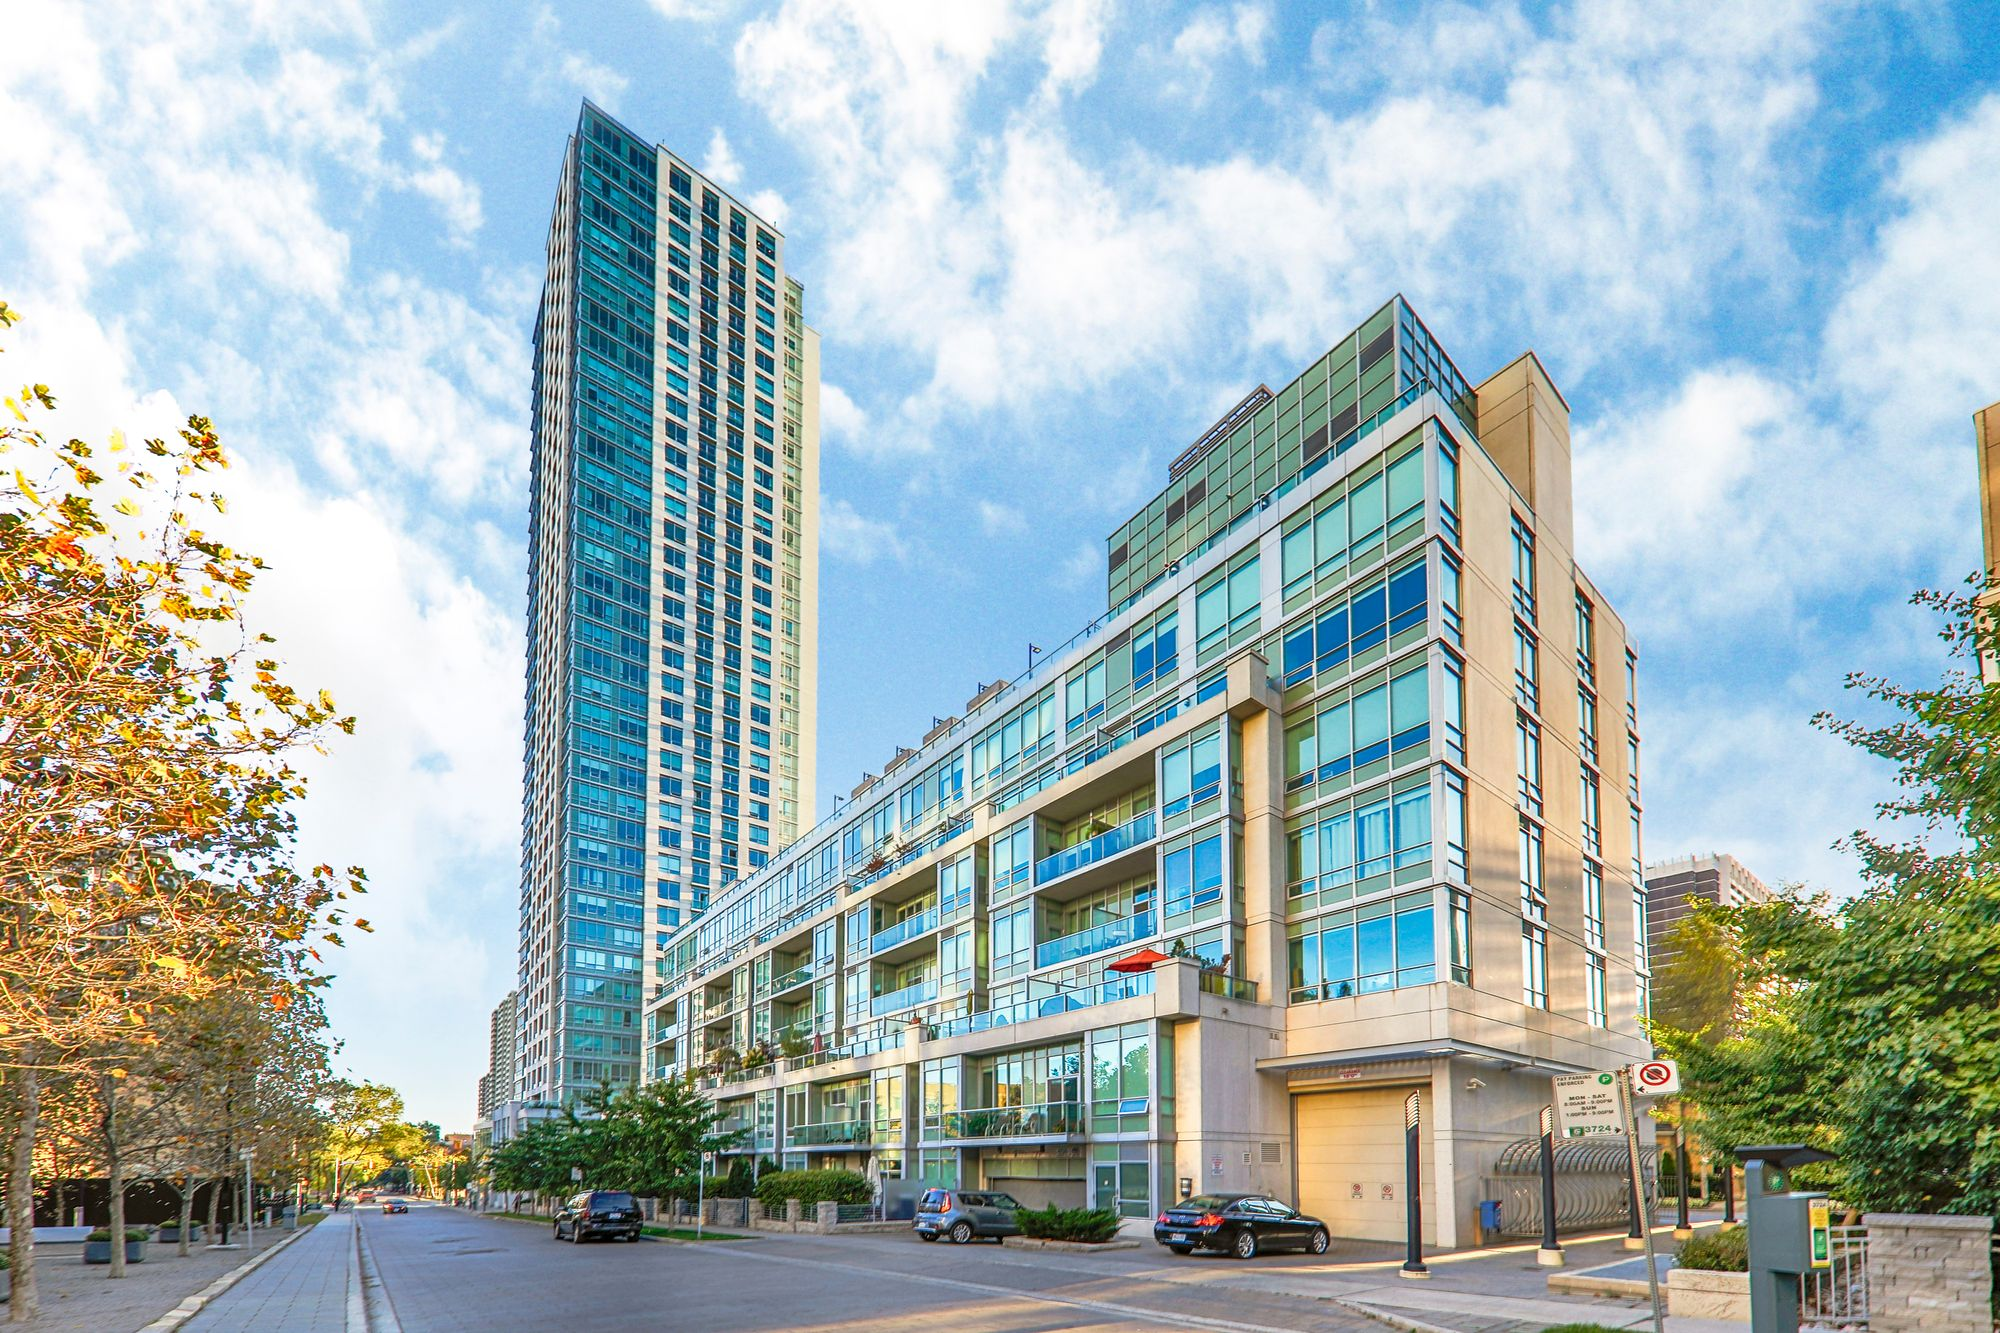 120 Homewood Ave. This condo at The Verve is located in  Downtown, Toronto - image #1 of 4 by Strata.ca